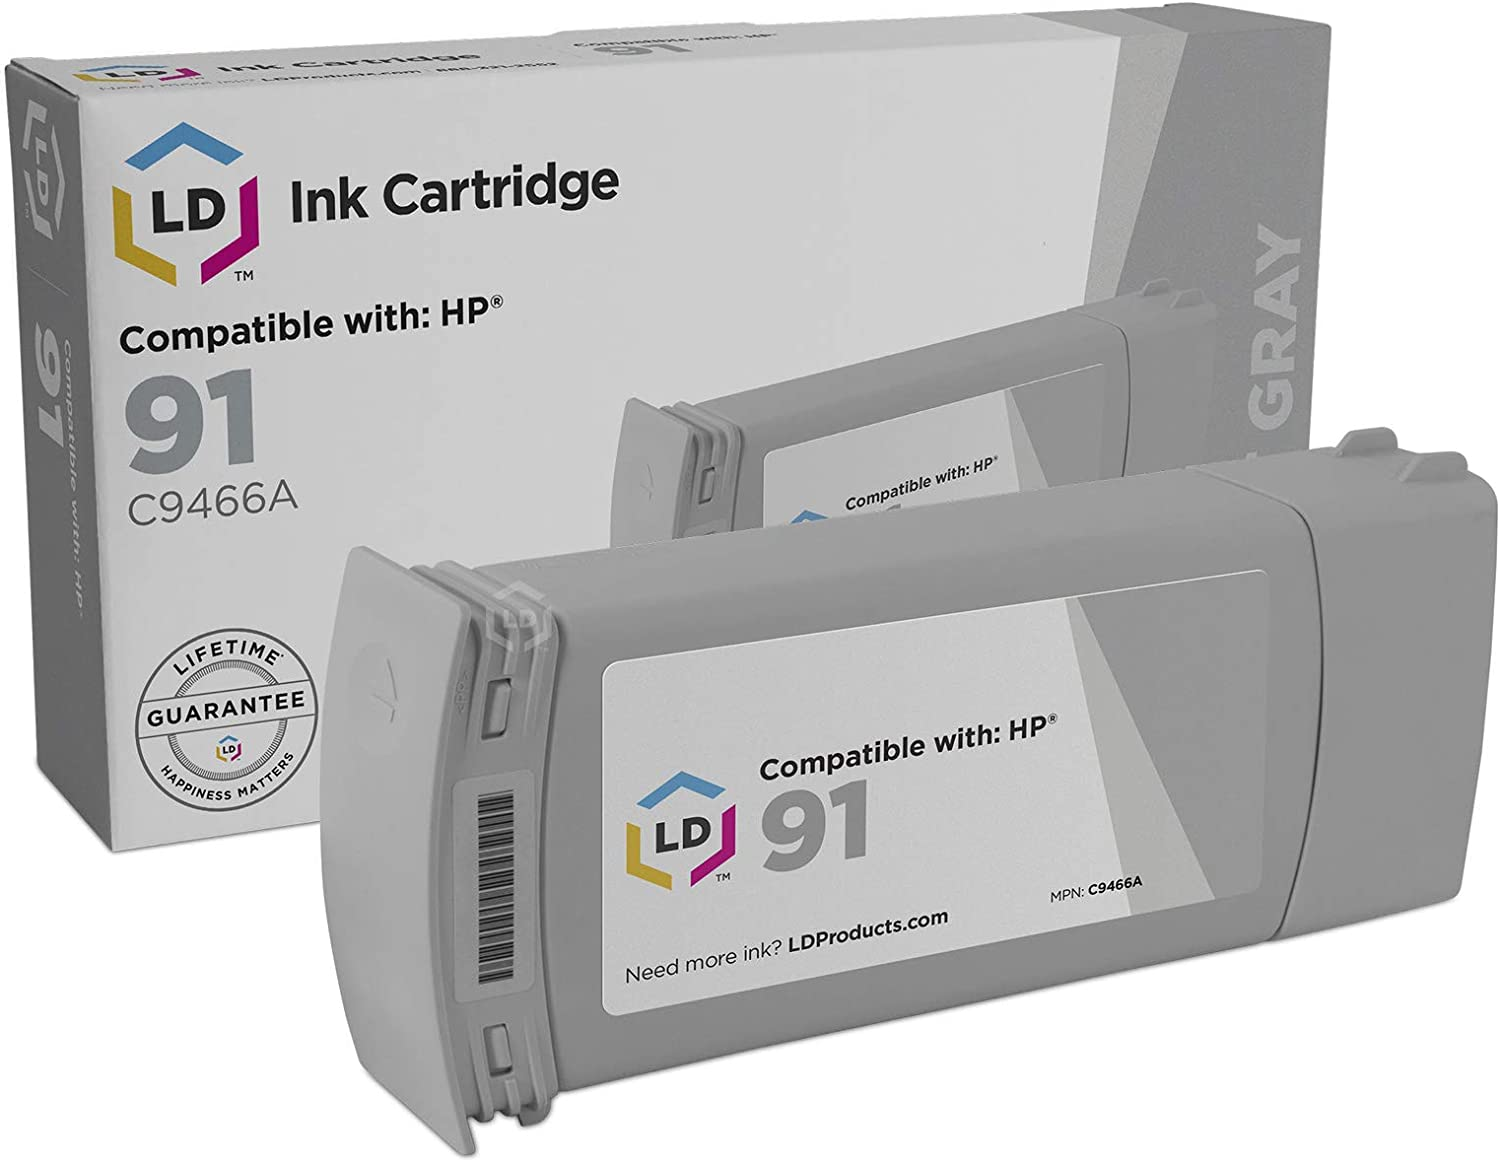 LD Remanufactured Ink Cartridge Replacement for HP 91 C9466A (Light Gray)